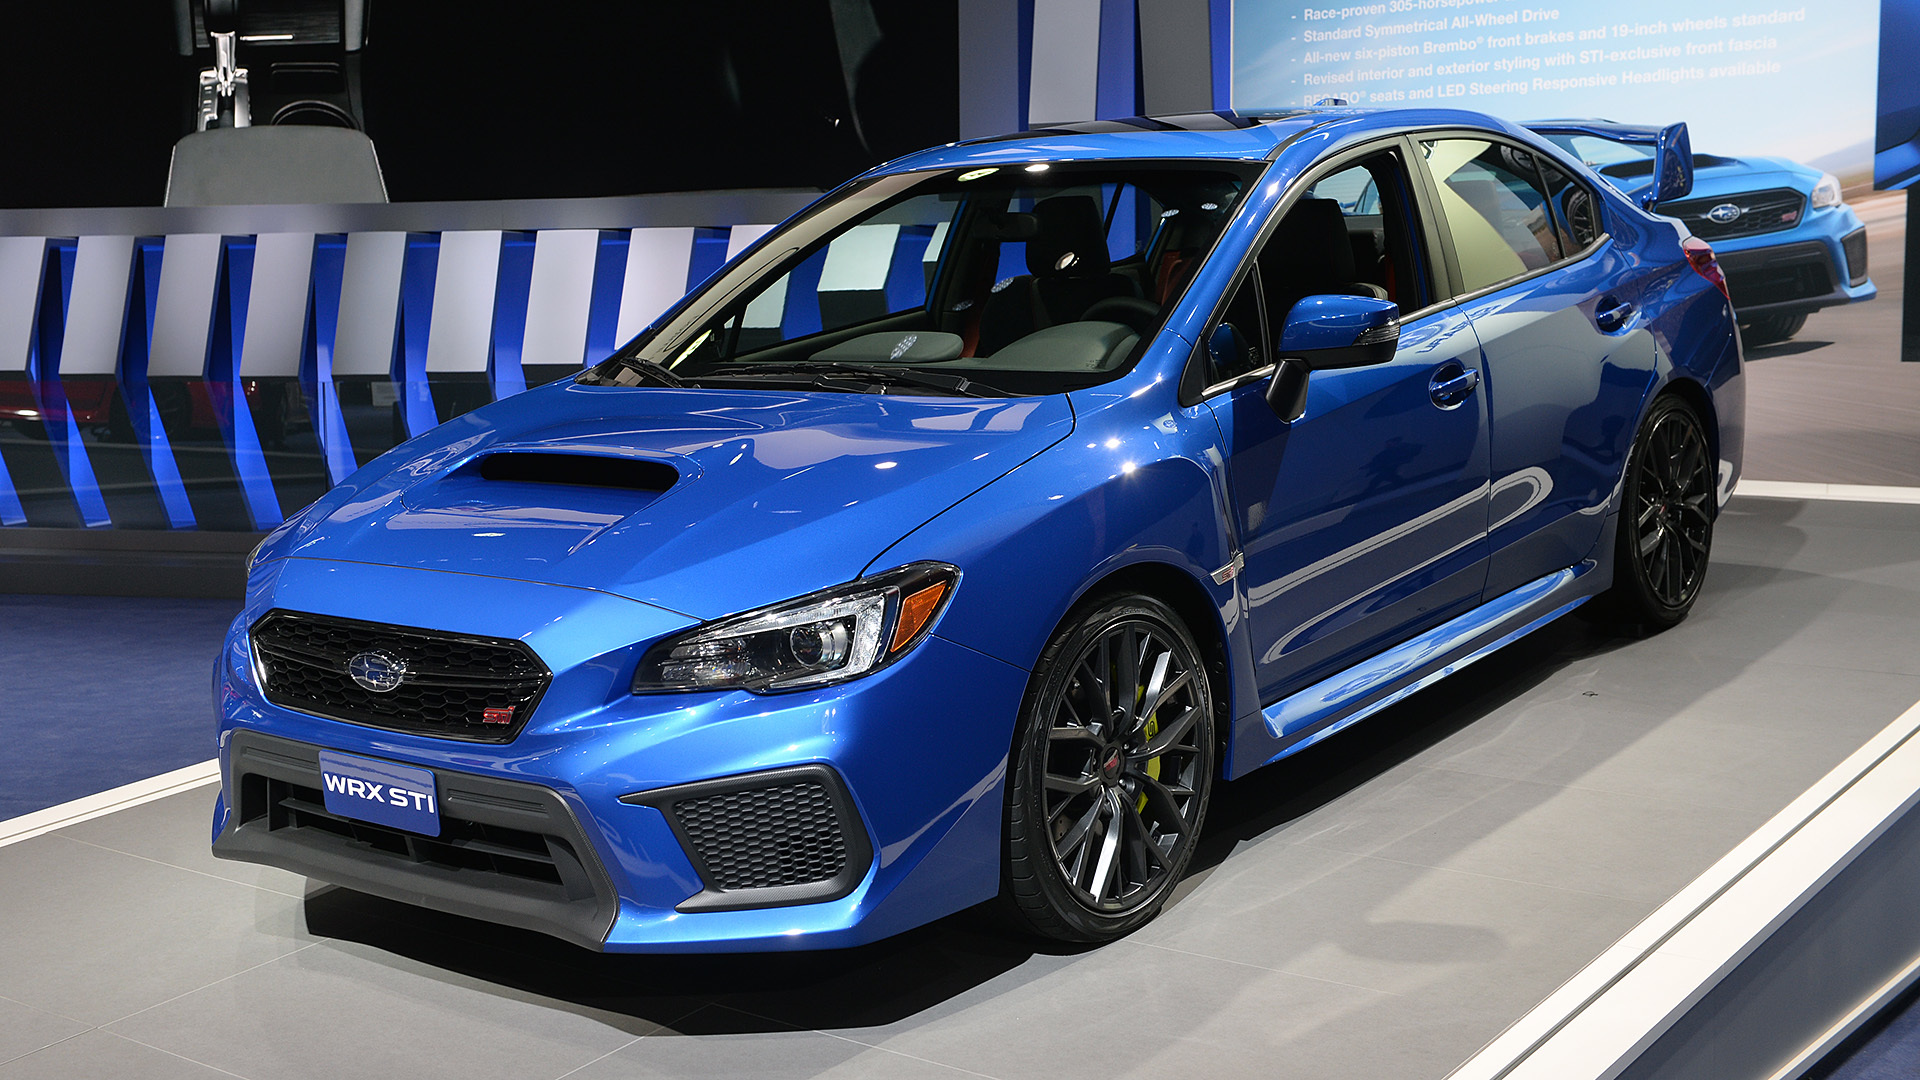 2018 Subaru Impreza Wrx Sti Detroit 2017 Photo Gallery Autoblog